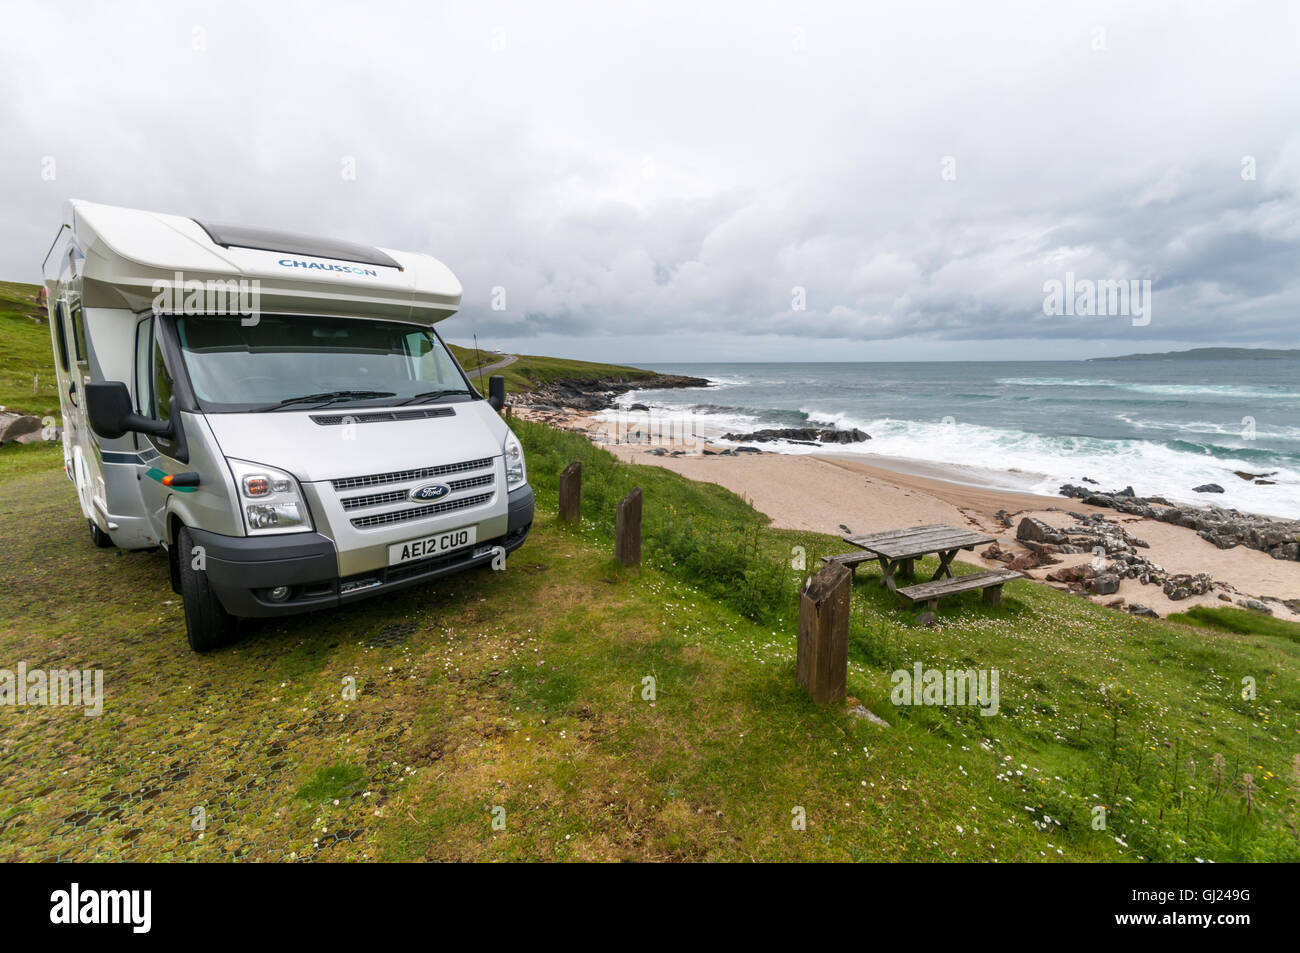 A Ford Chausson motorhome parked at the Sgarastadh Mhor picnic area on South Harris in the Outer Hebrides. - Stock Image